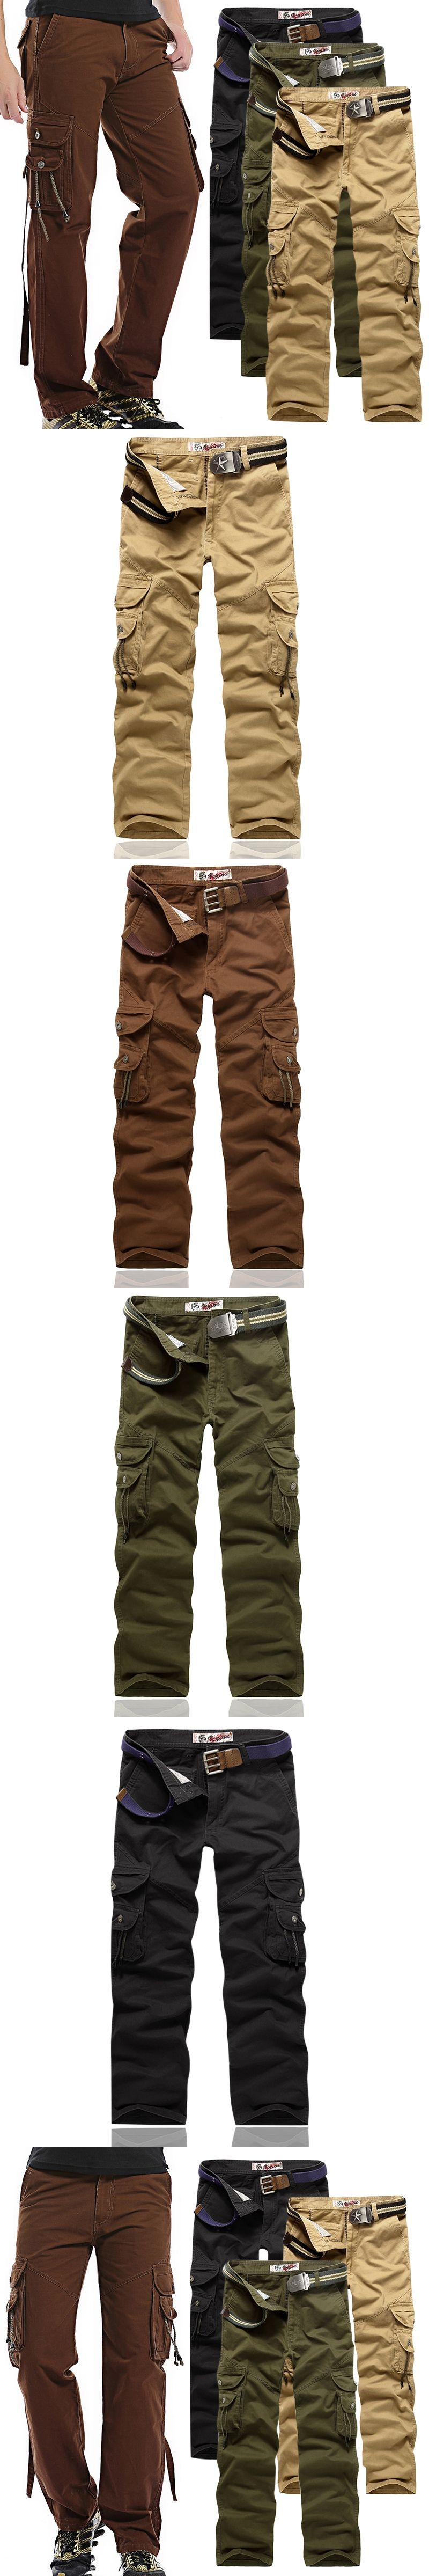 c12cd0447d9211 2017 New Arrival High Quality All Seasons Men Cargo Trousers Style Fashion  Clothing Solid Mens Cargo